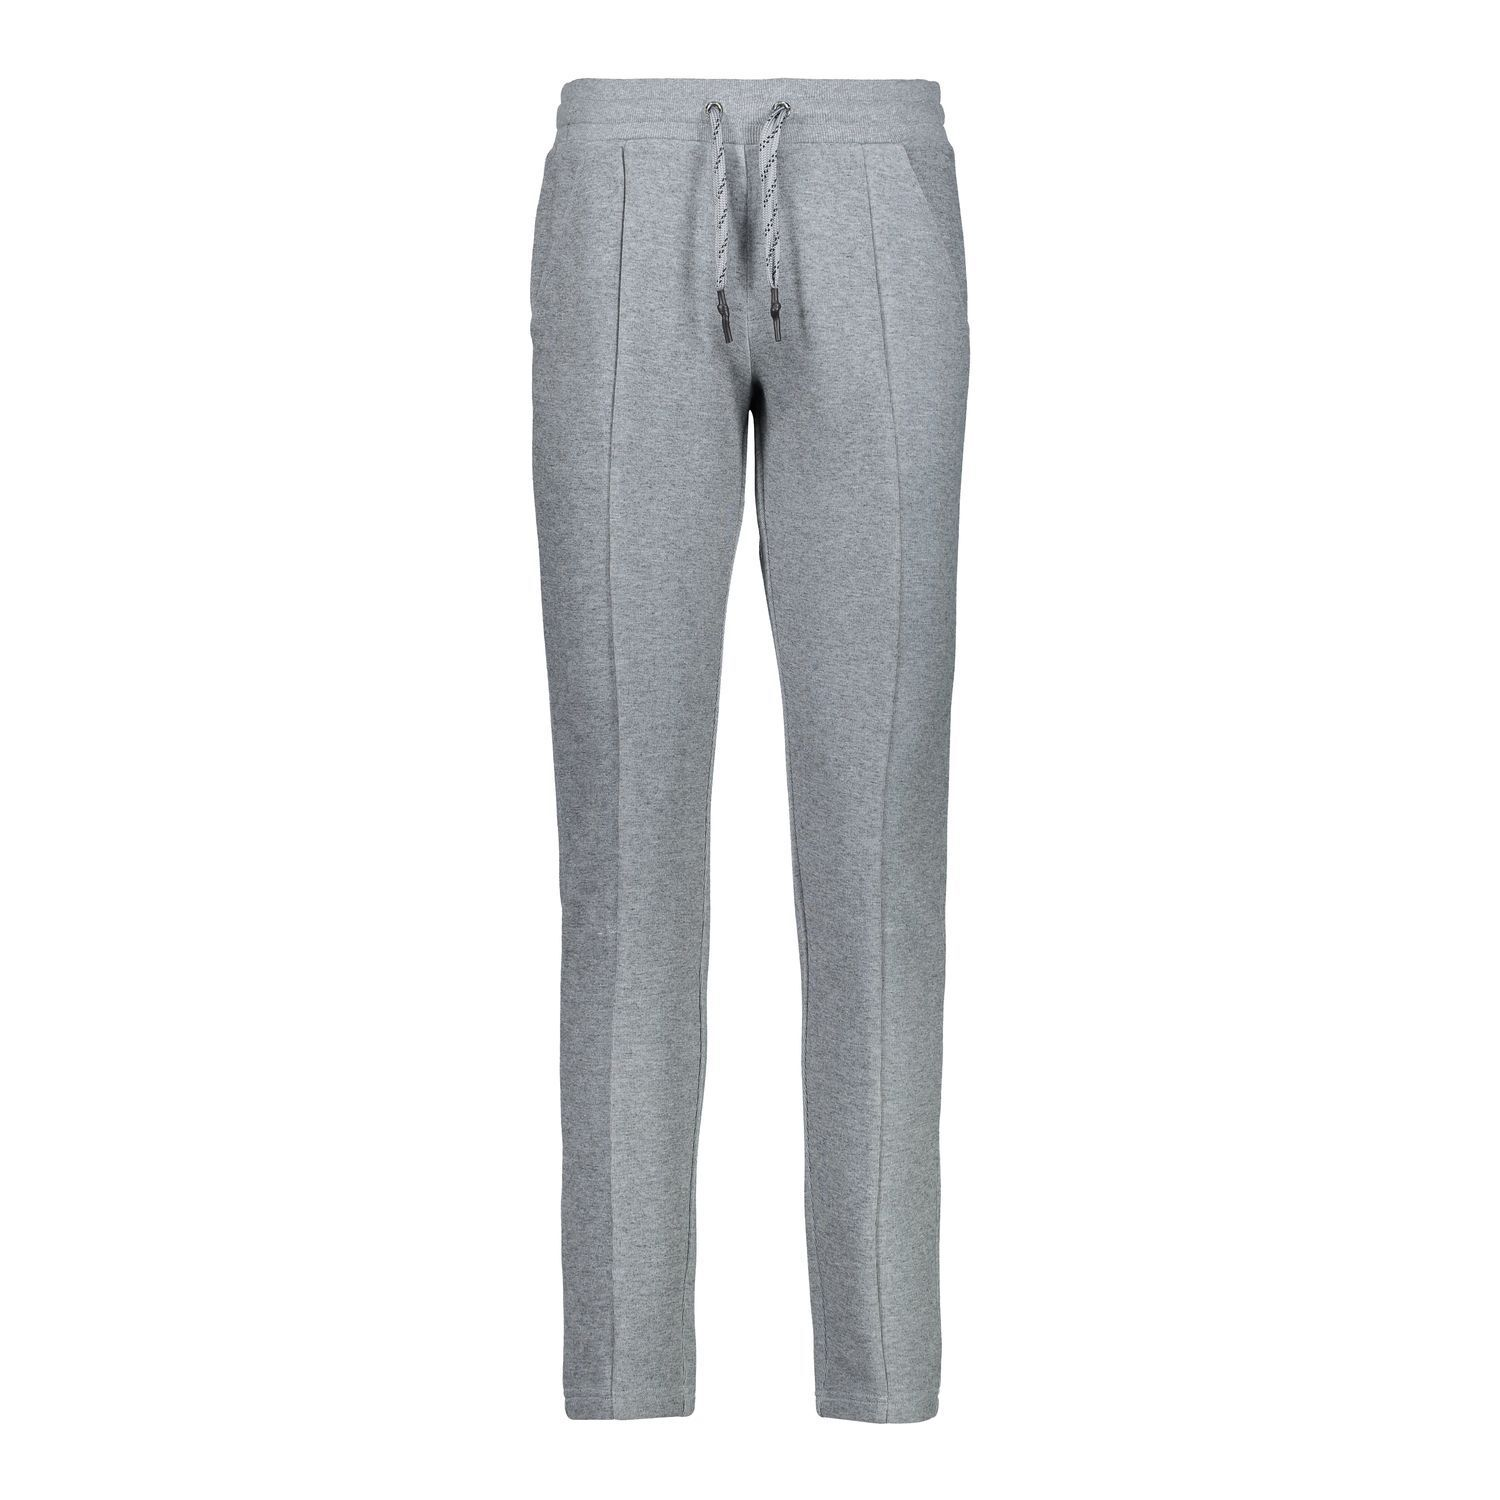 CMP Pantaloni  in Pile women Long grey Traspirante Riscaldamento Ericamix  best prices and freshest styles